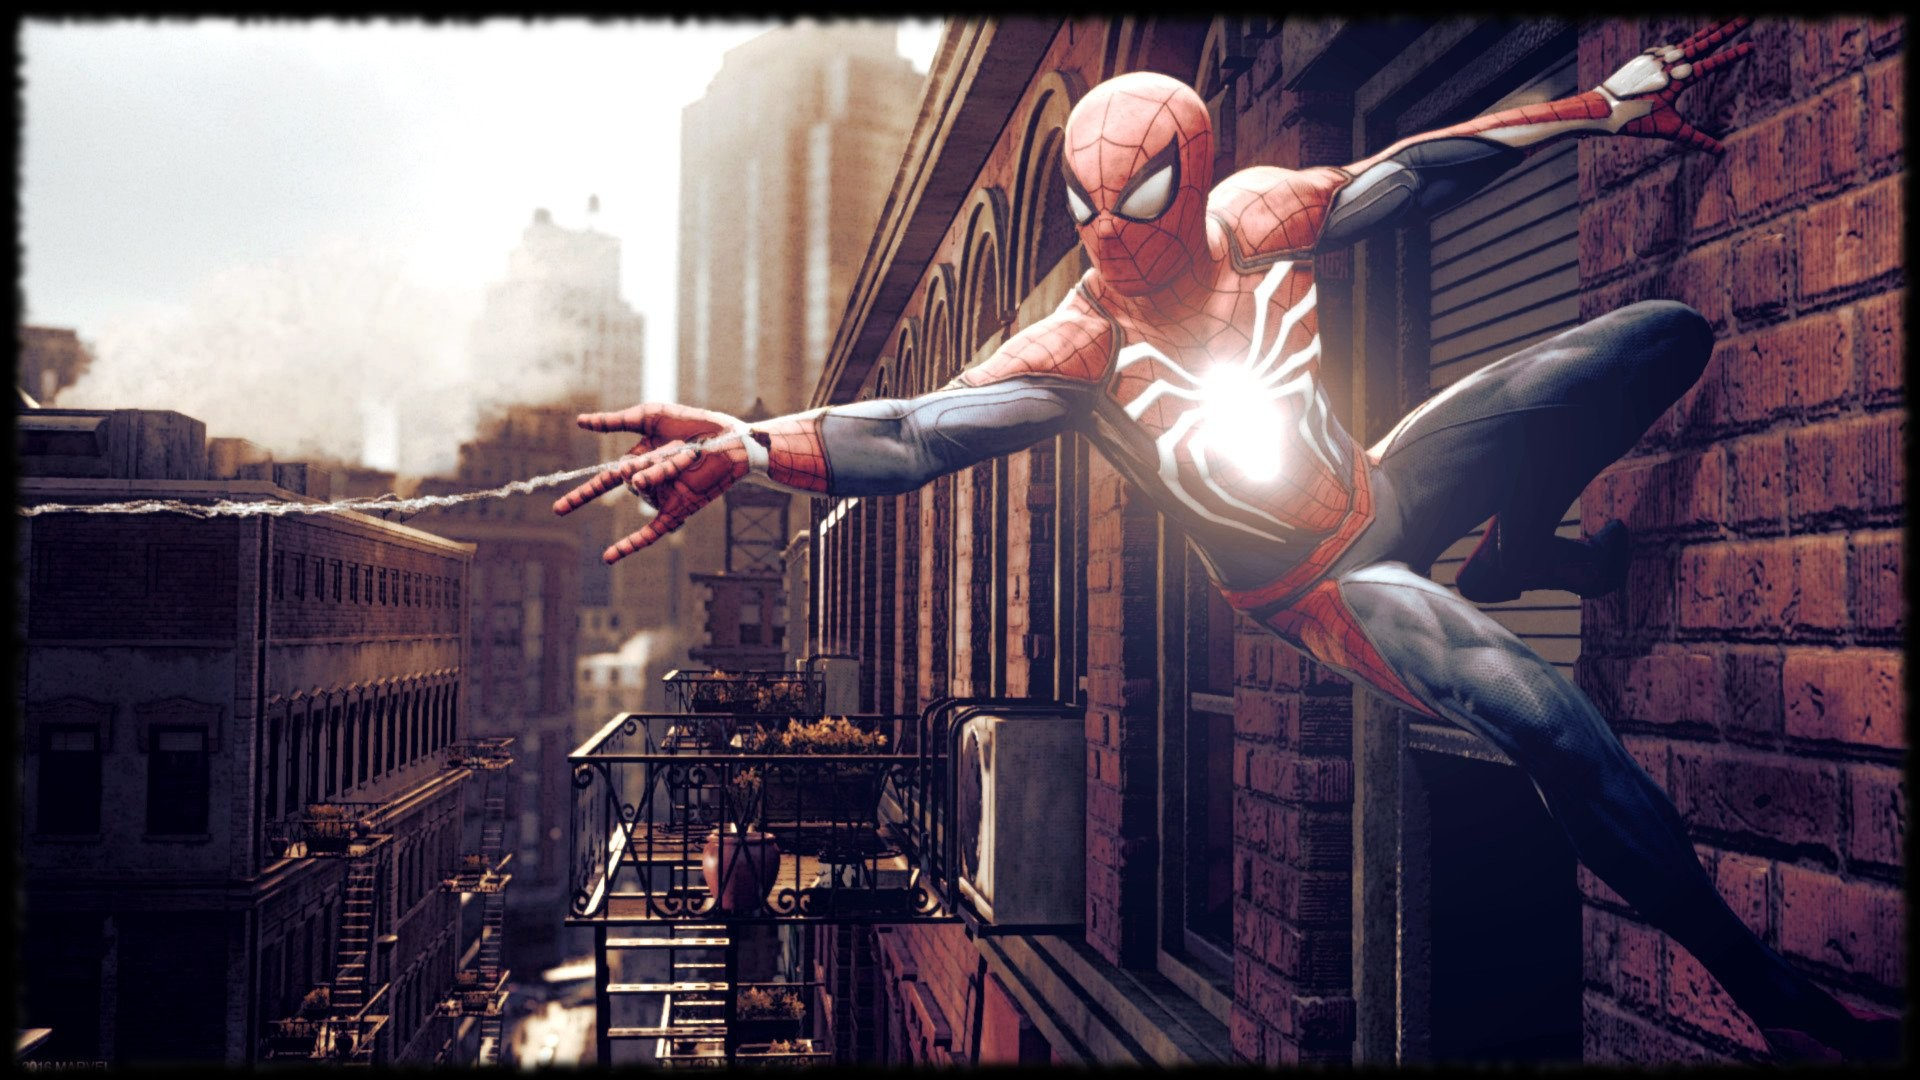 Game Of Spider Man Hd Wallpaper: Ps4 Wallpapers (79+ Images